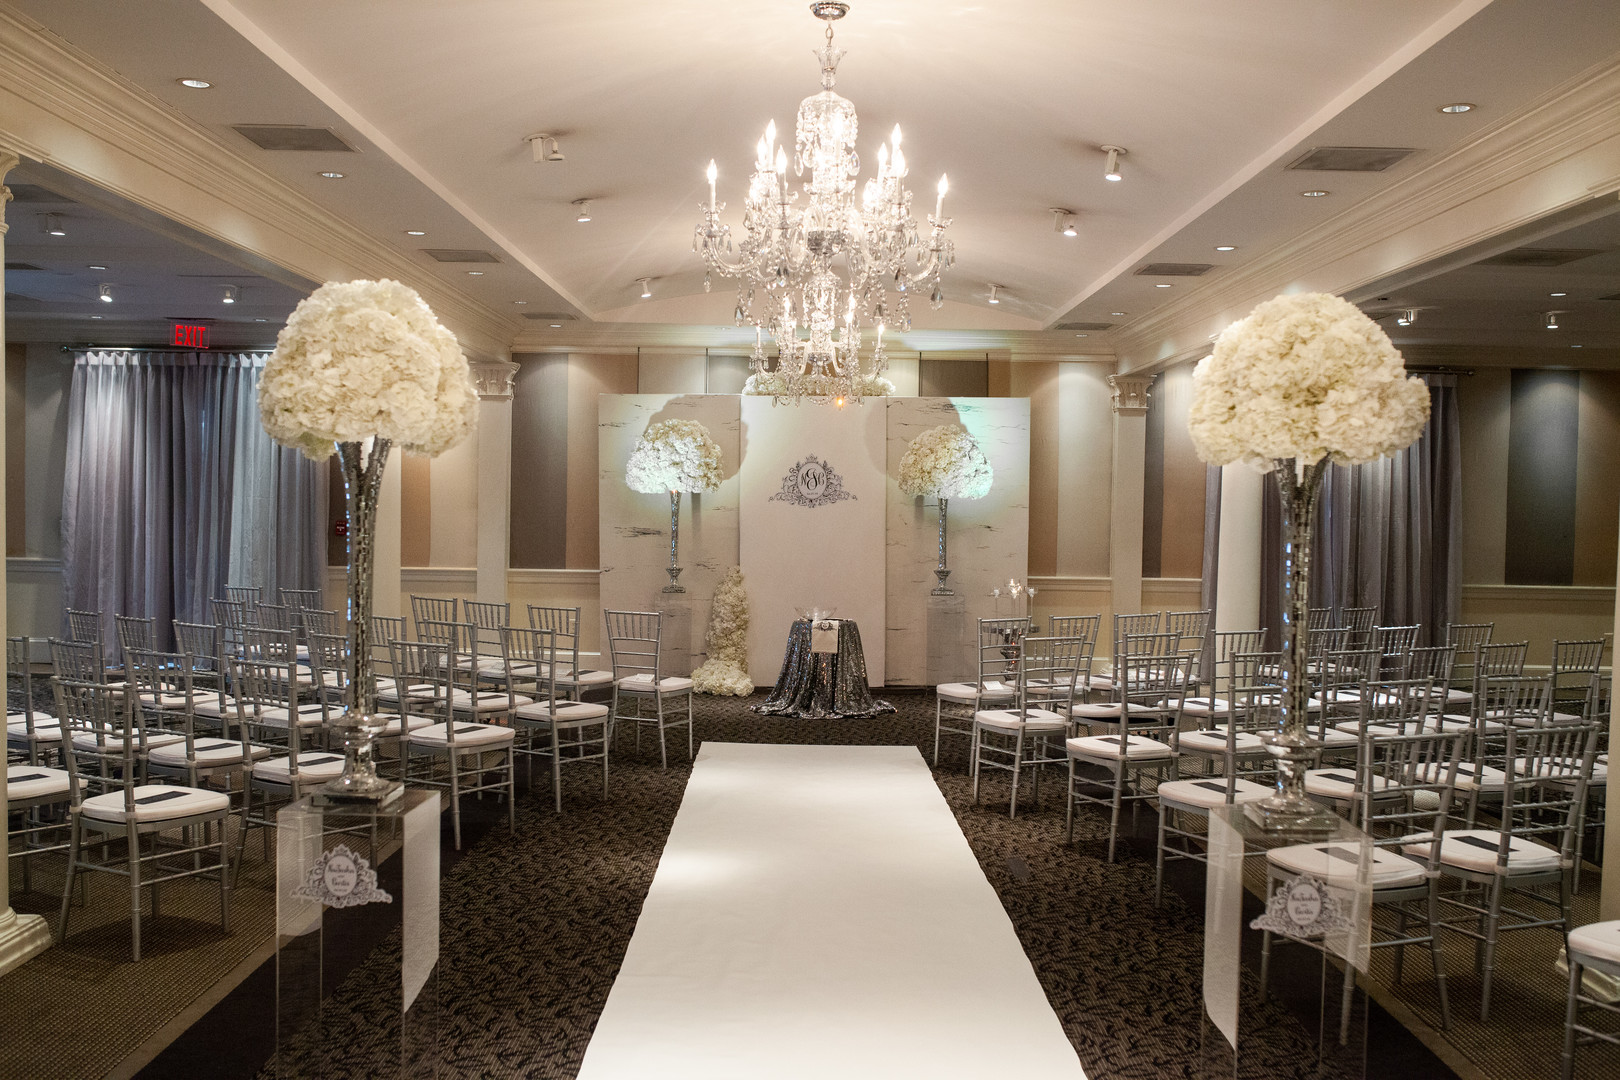 Elegance and Class in a Ballroom